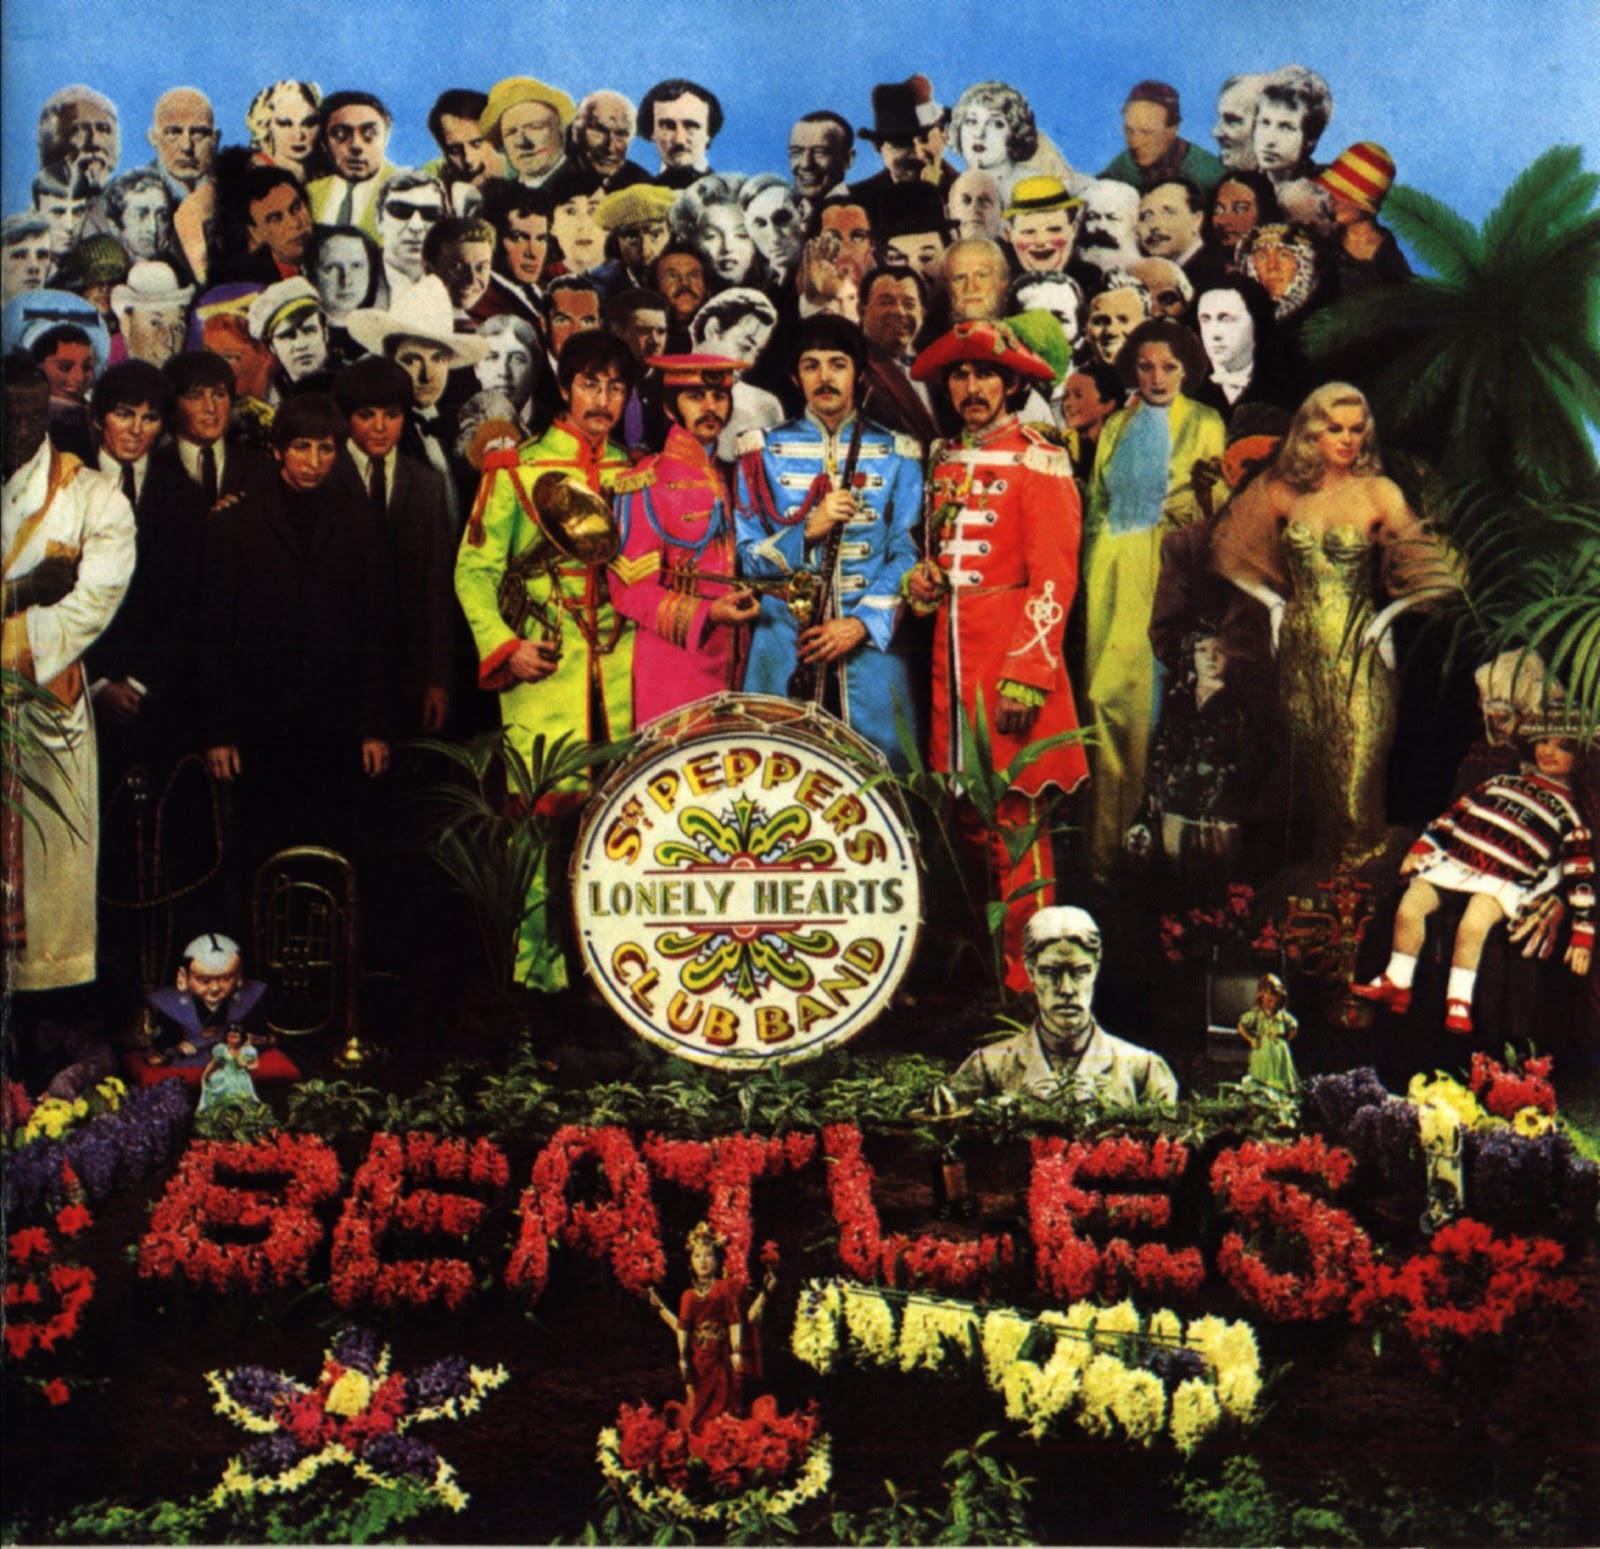 http://4.bp.blogspot.com/-00_nf7ROk7g/T9kznp7E_yI/AAAAAAAAC4E/rLAog7PWHAc/s1600/The+Beatles+-+Sgt+Peppers+Lonely+Hearts+Club+Band.jpg